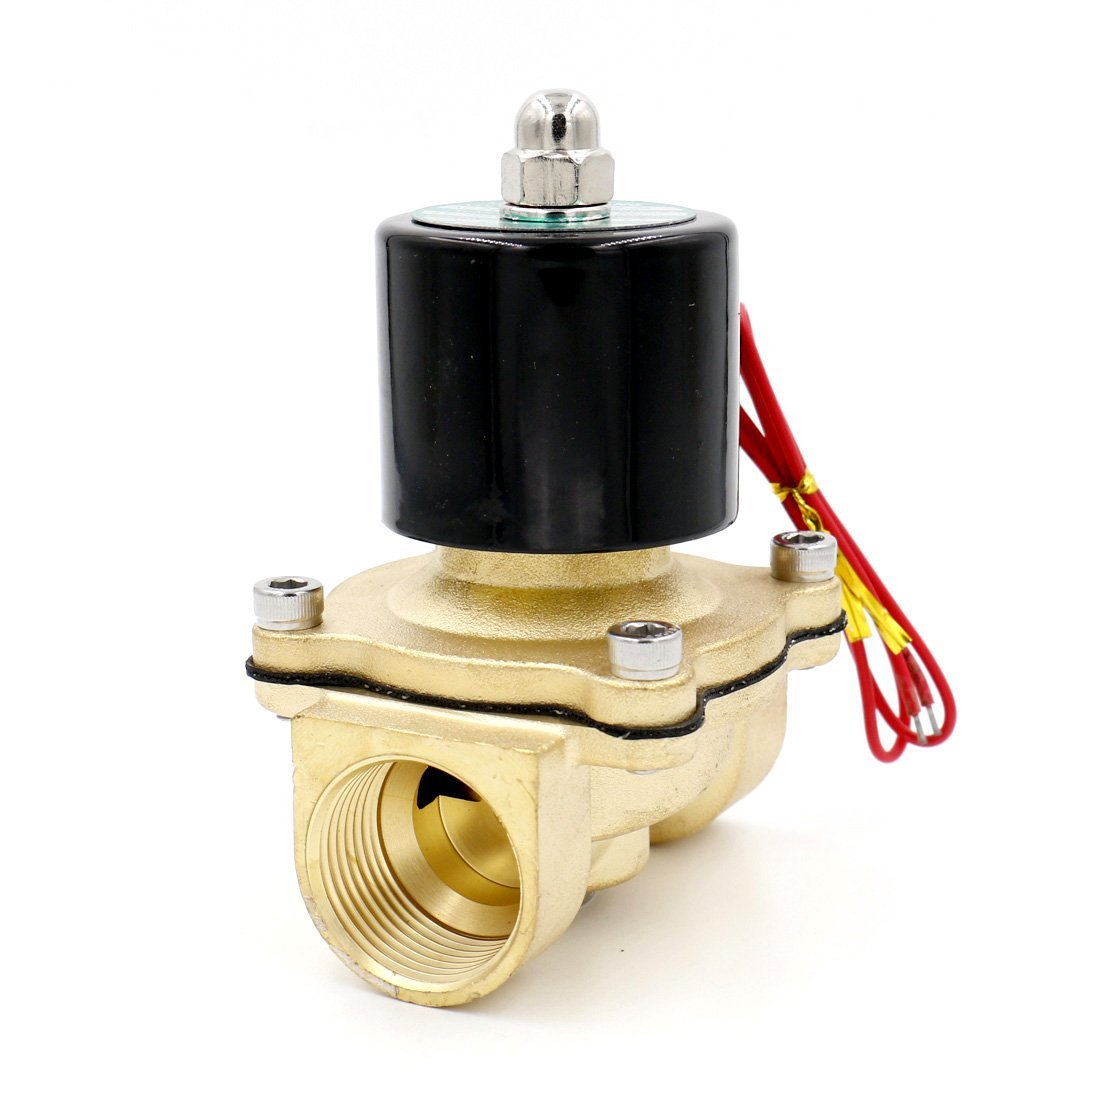 Baomain 1 inch DC 24V Brass Electric Solenoid Valve Water Air Fuels NC Valve